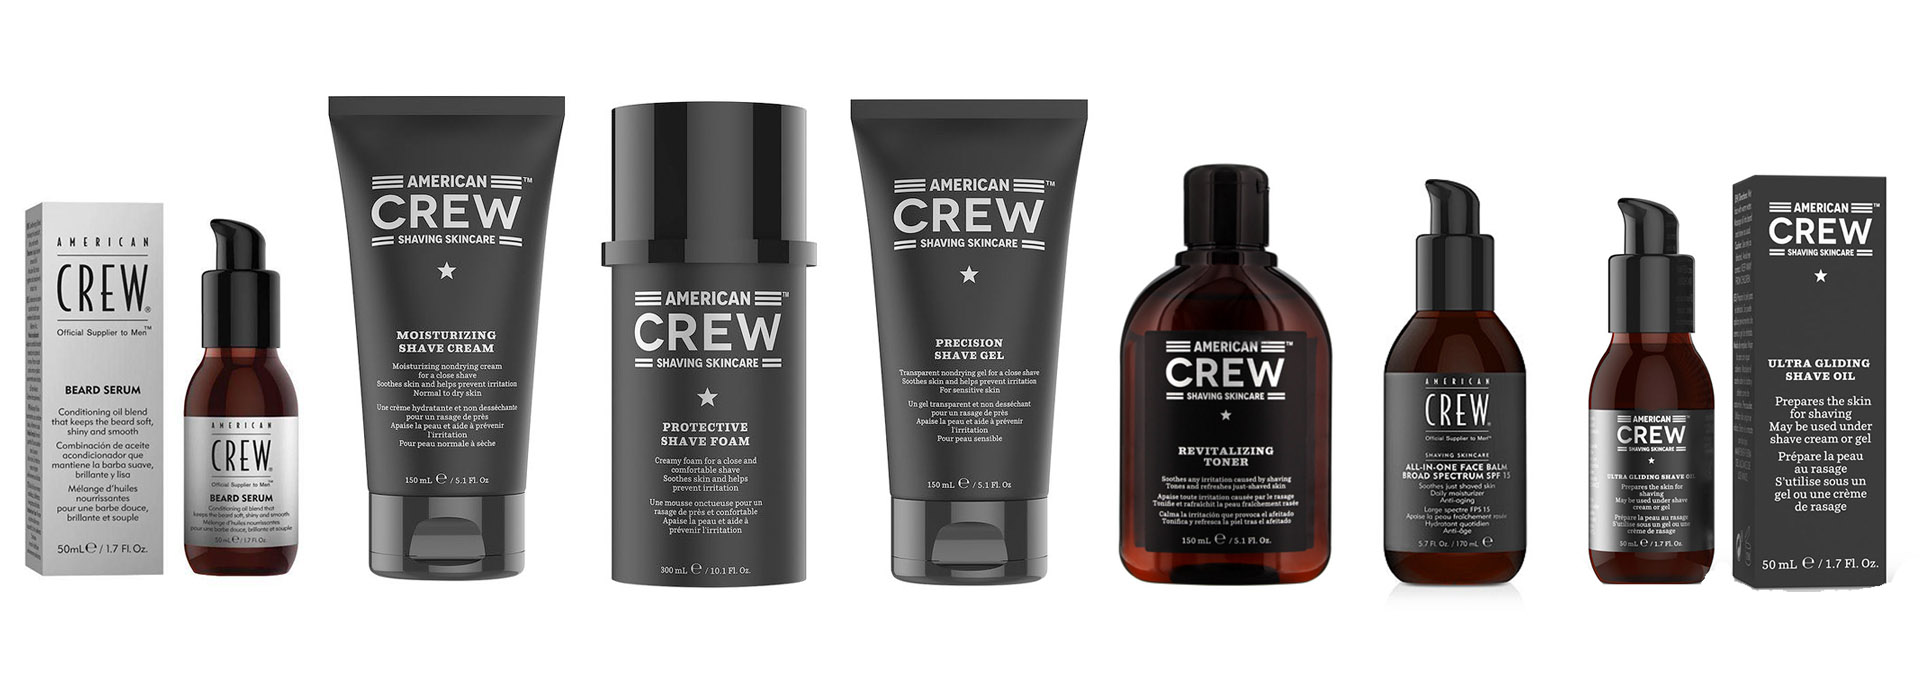 The Mens Room stocks American Crew products